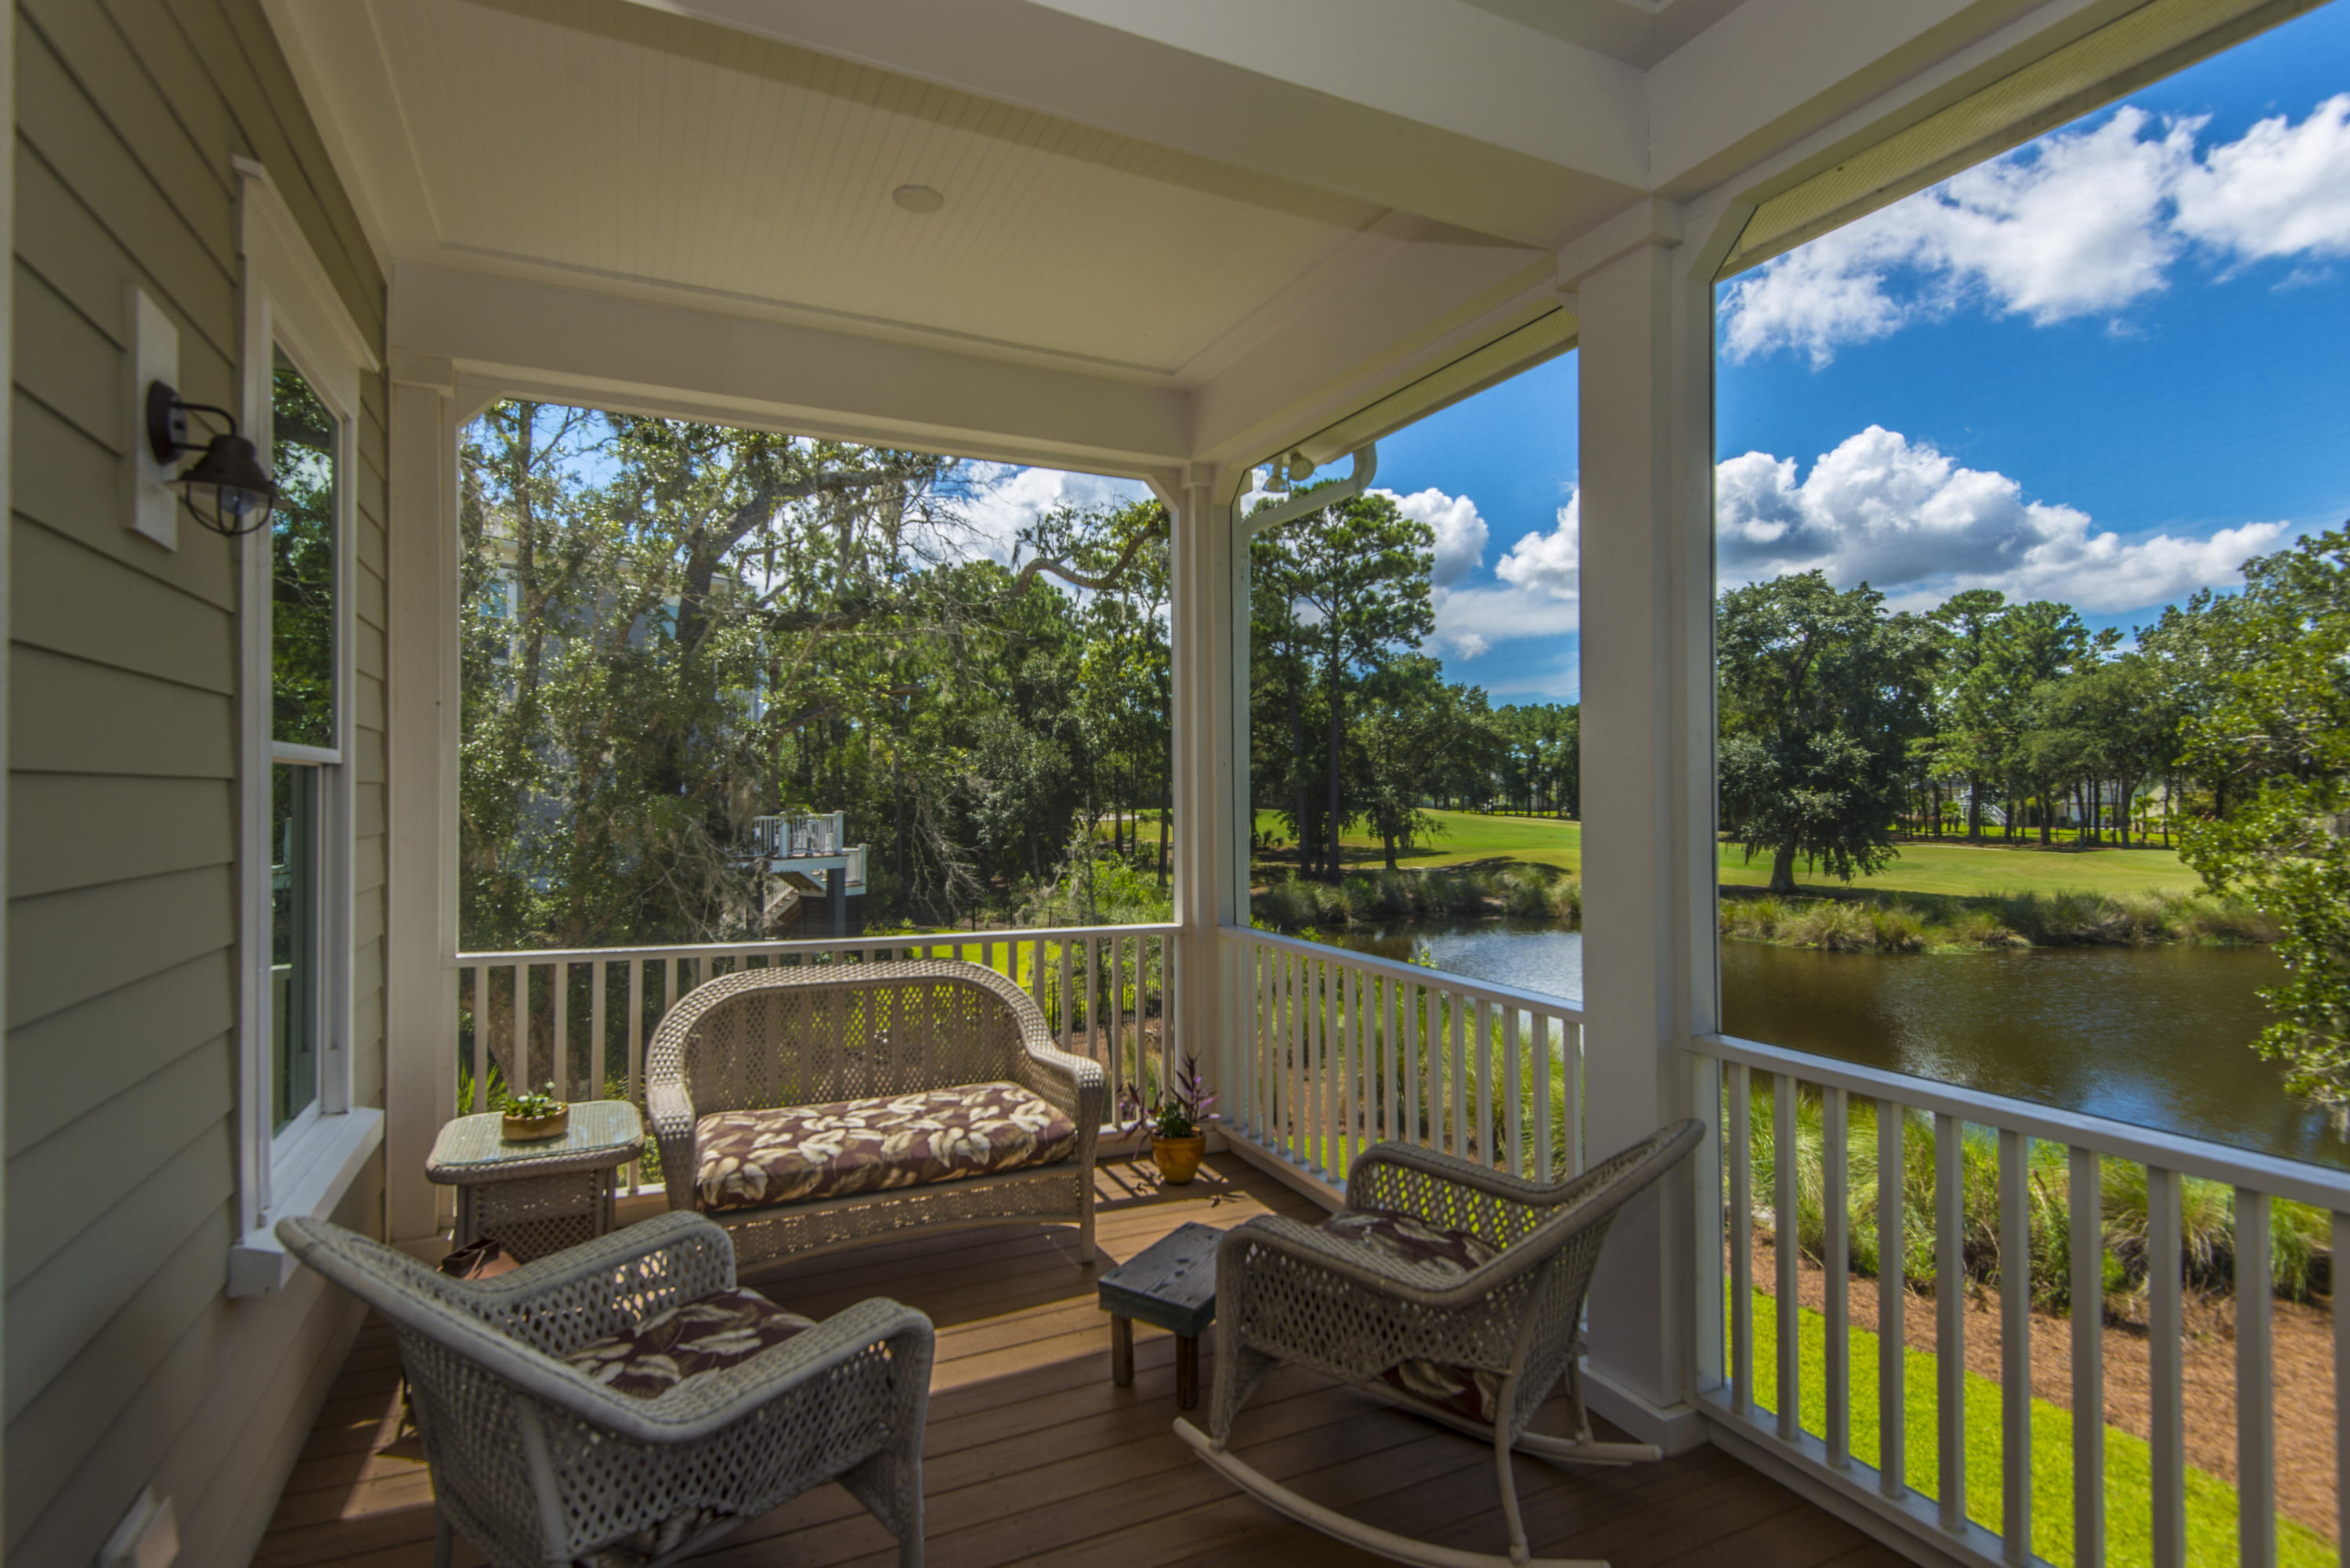 Rivertowne Country Club Homes For Sale - 1542 Sea Pines, Mount Pleasant, SC - 21